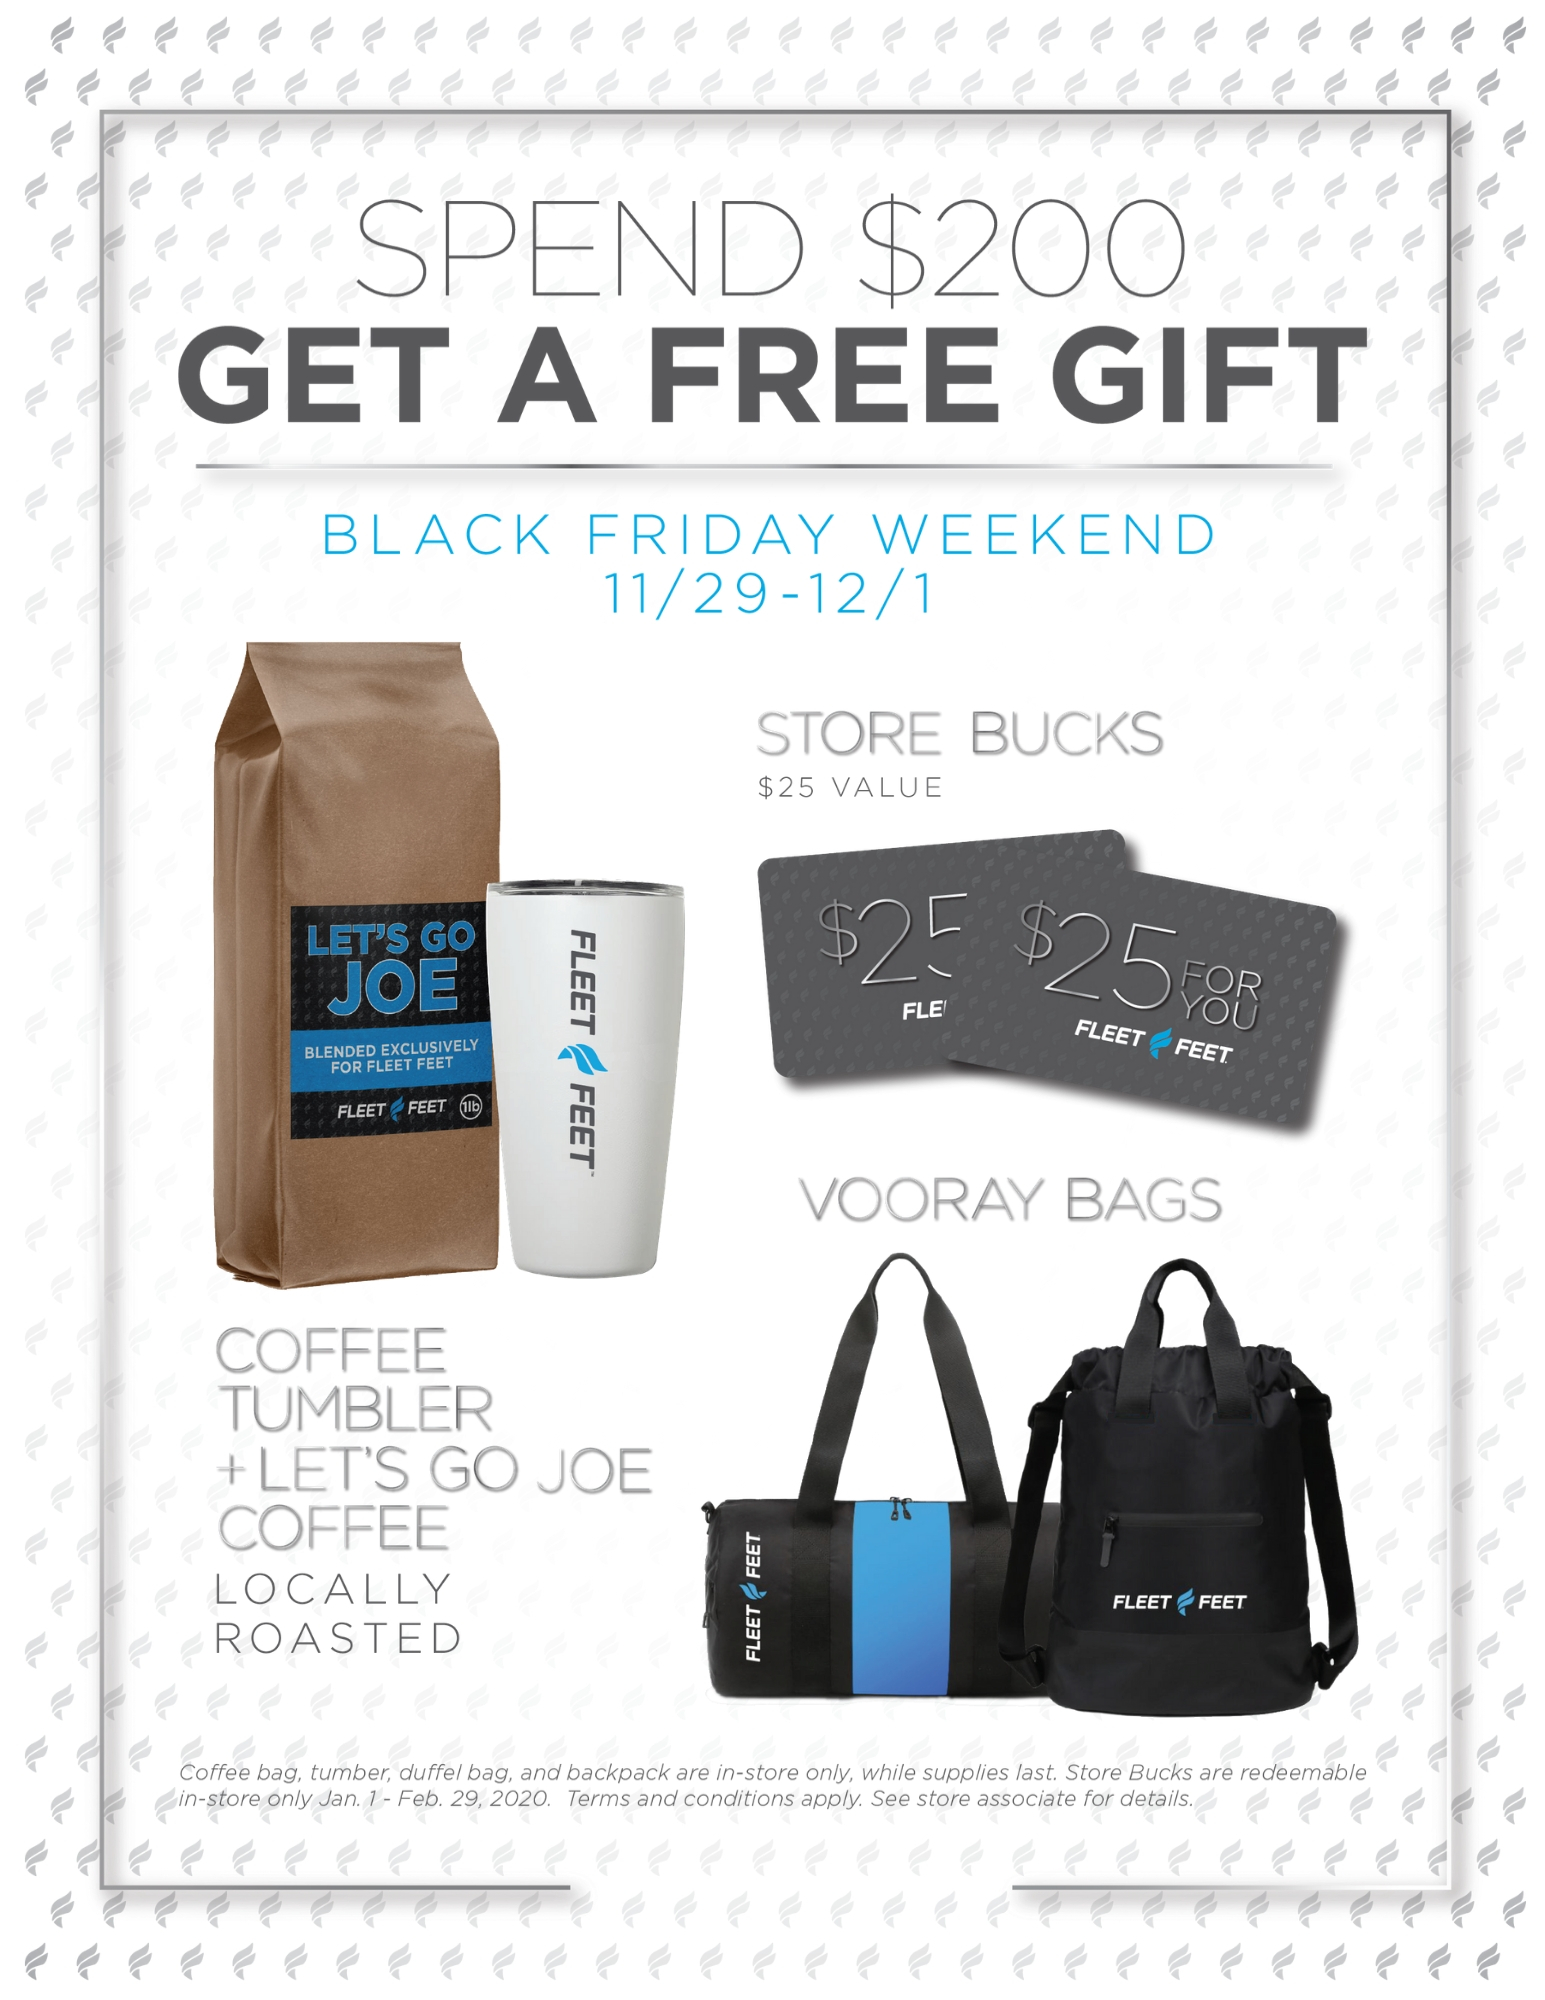 Gift with purchase of $200 or more